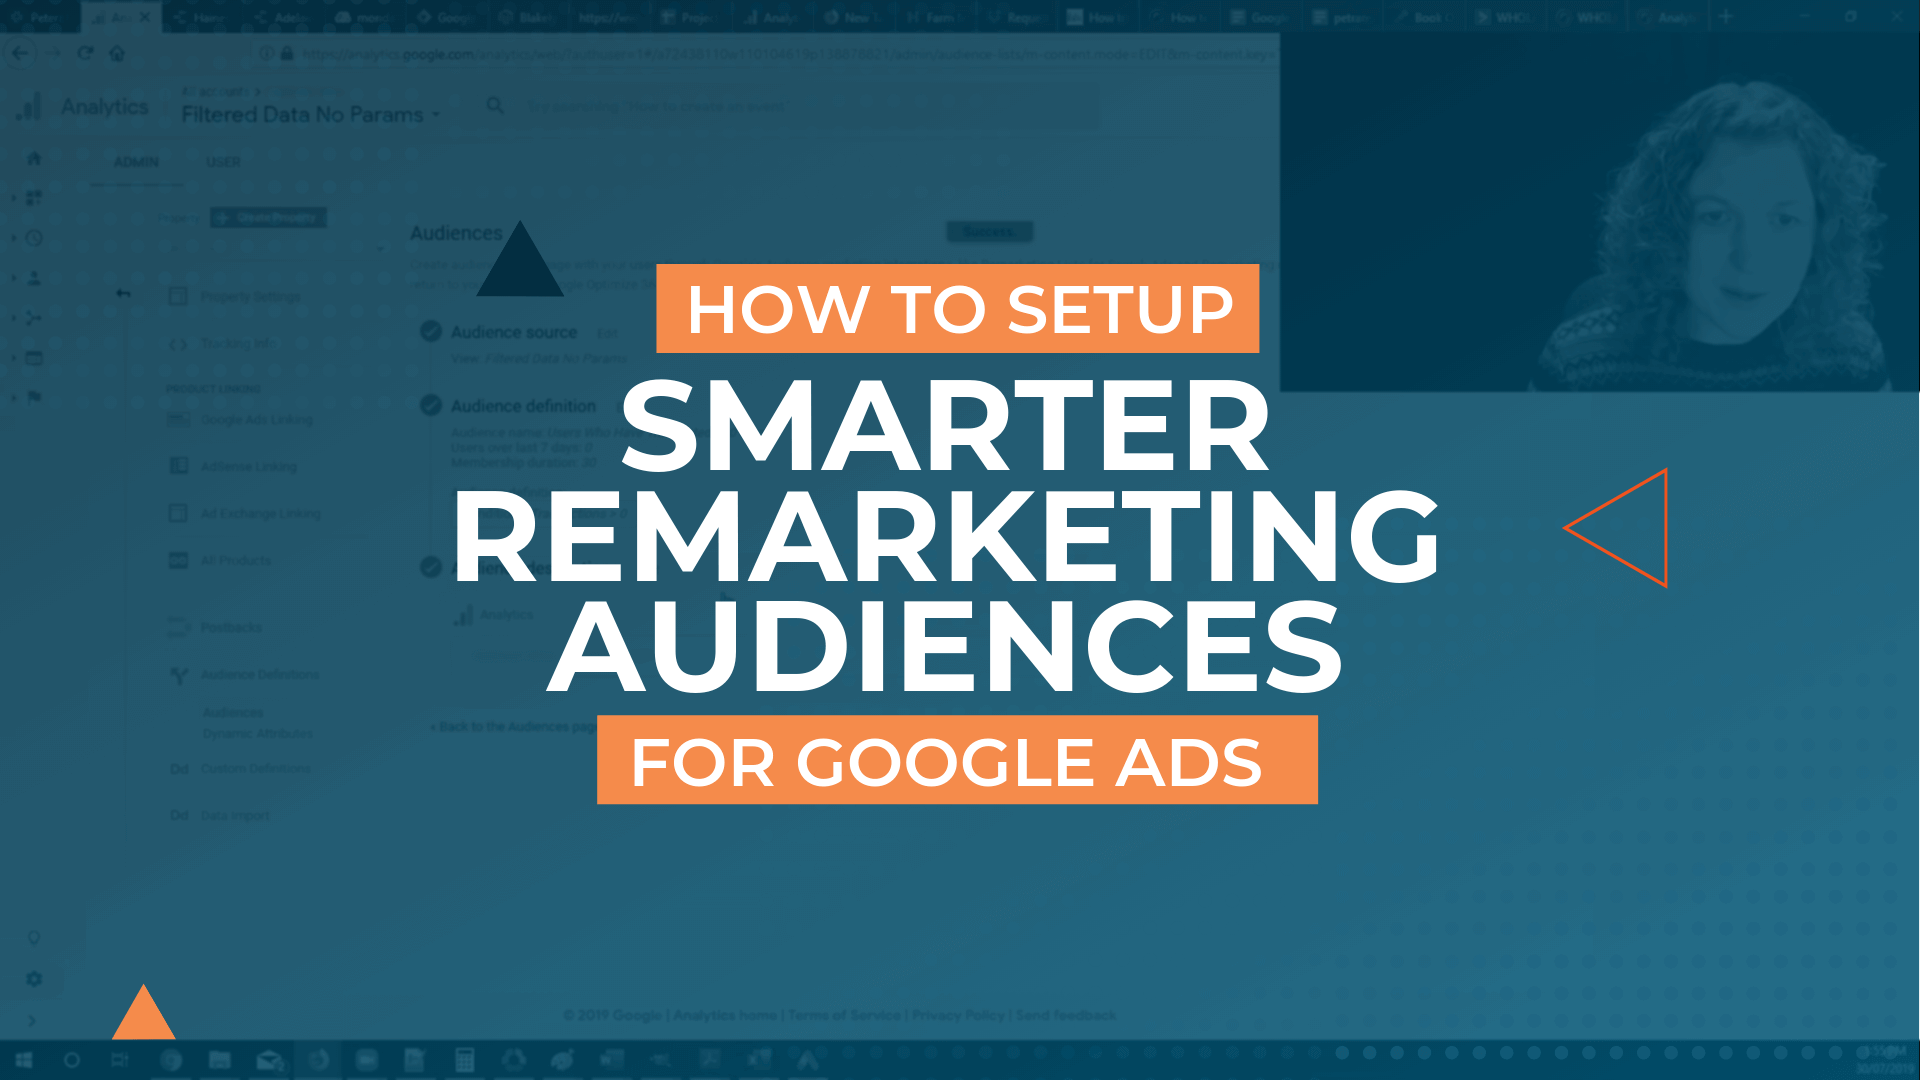 [Video] How To Set Up Smarter Remarketing Audiences for Google Ads